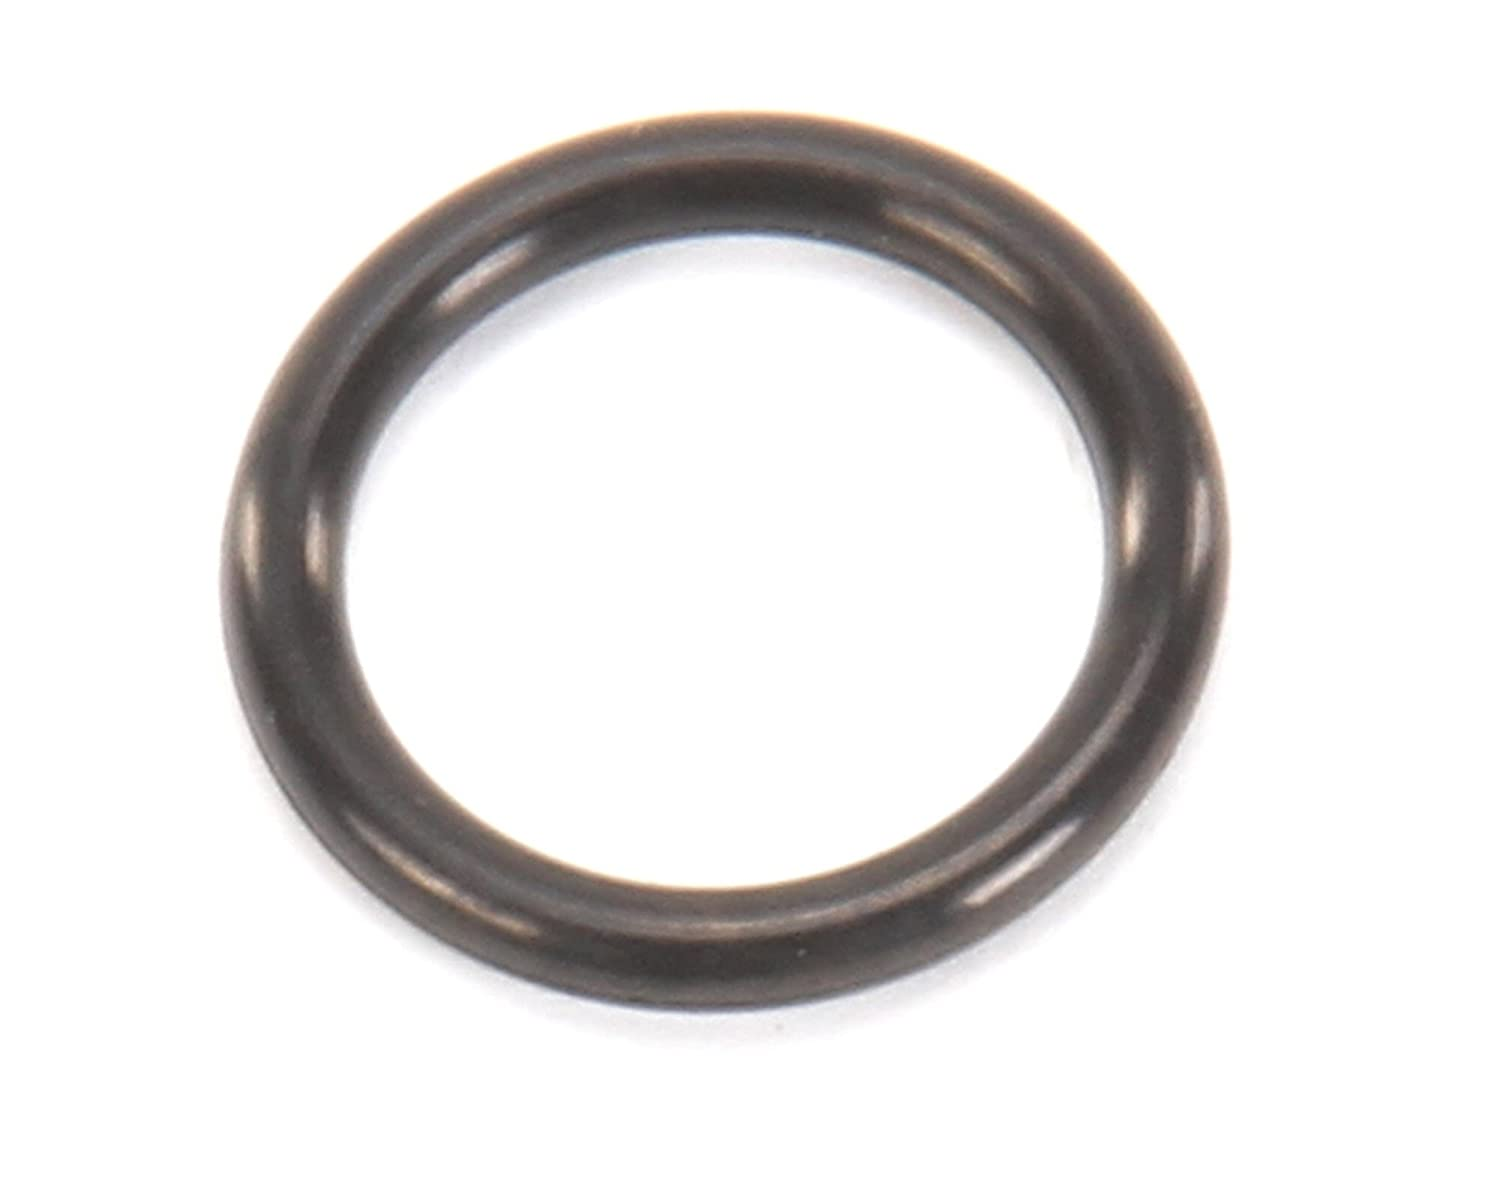 16-1//2 OD 16 ID 16-1//2 OD Sur-Seal STCC 16 ID Outstanding Weather Resistance Sterling Seal and Supply Polytetrafluoro-Ethylene ORTFE907 Number 907 Standard Teflon O-Ring